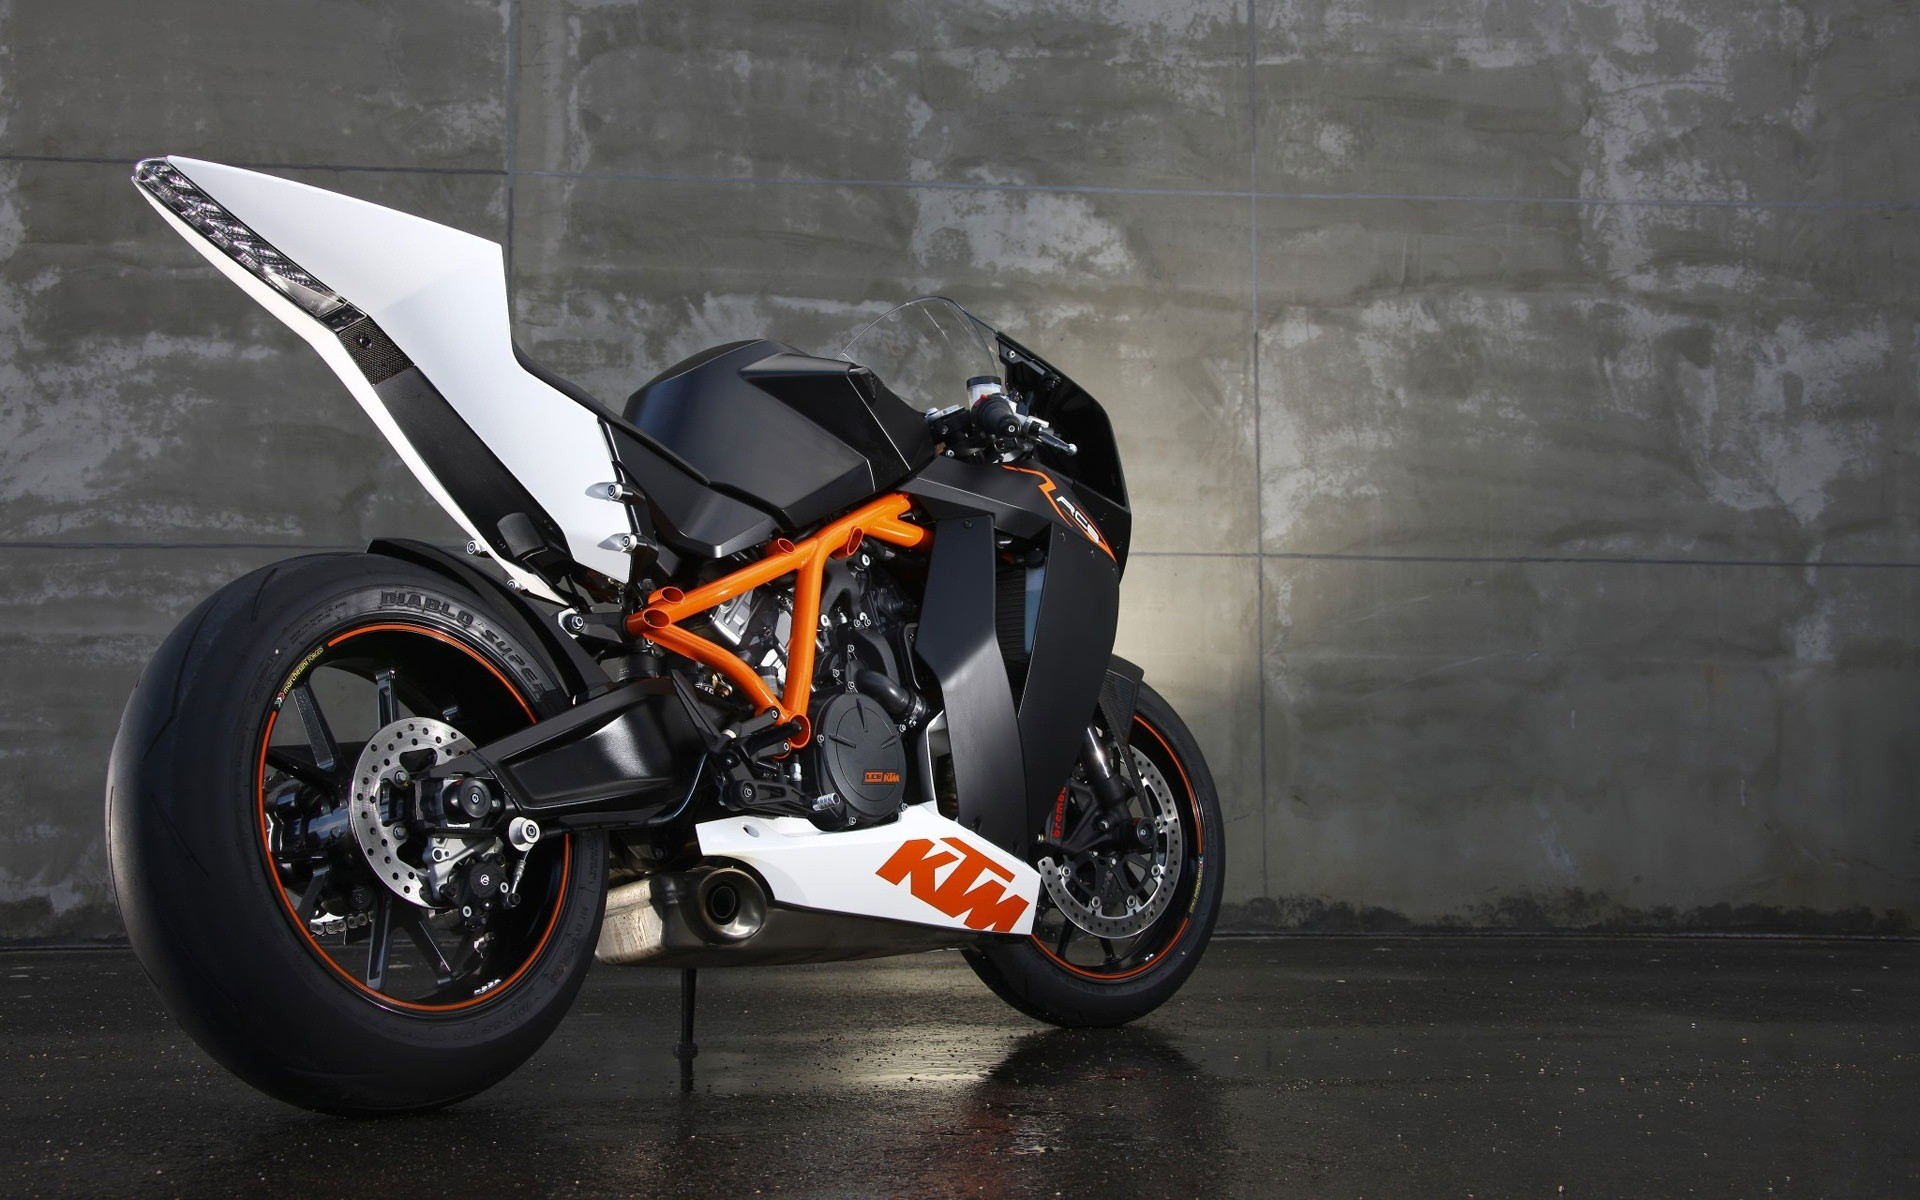 KTM RC8 HD Bikes 4k Wallpapers Images Backgrounds Photos And